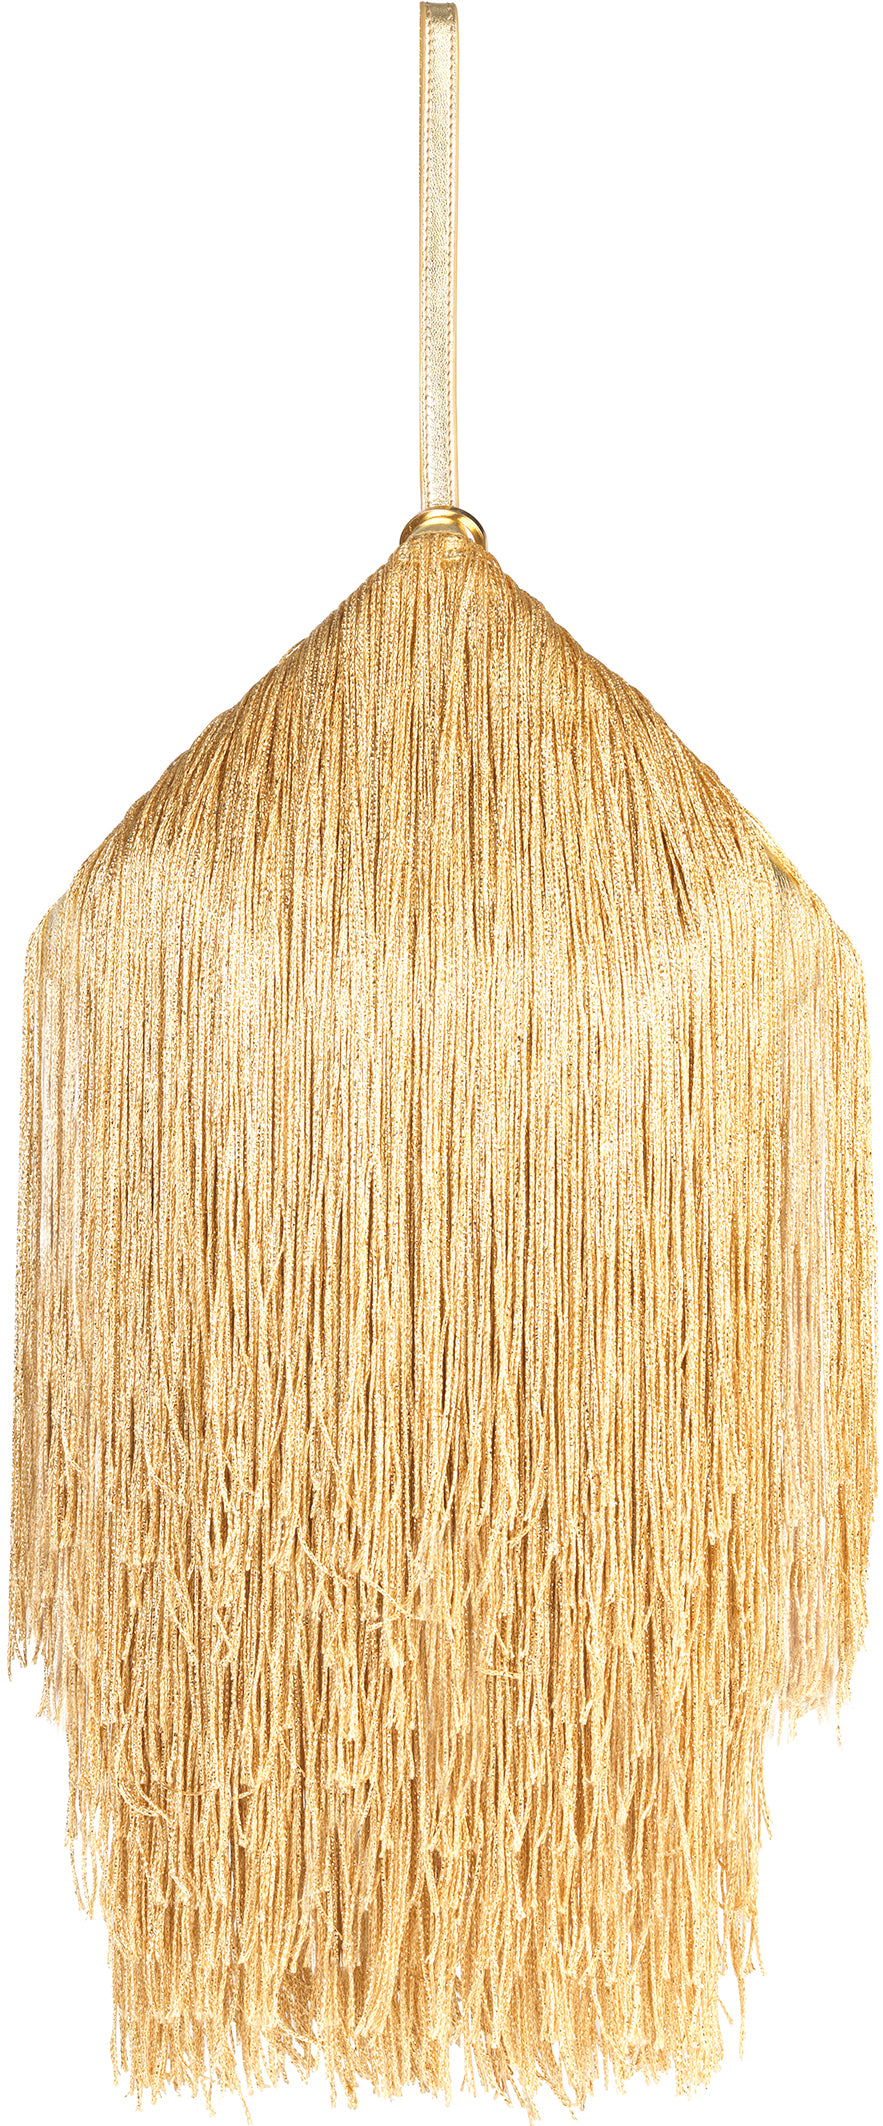 GOLD FRINGED LANTERN